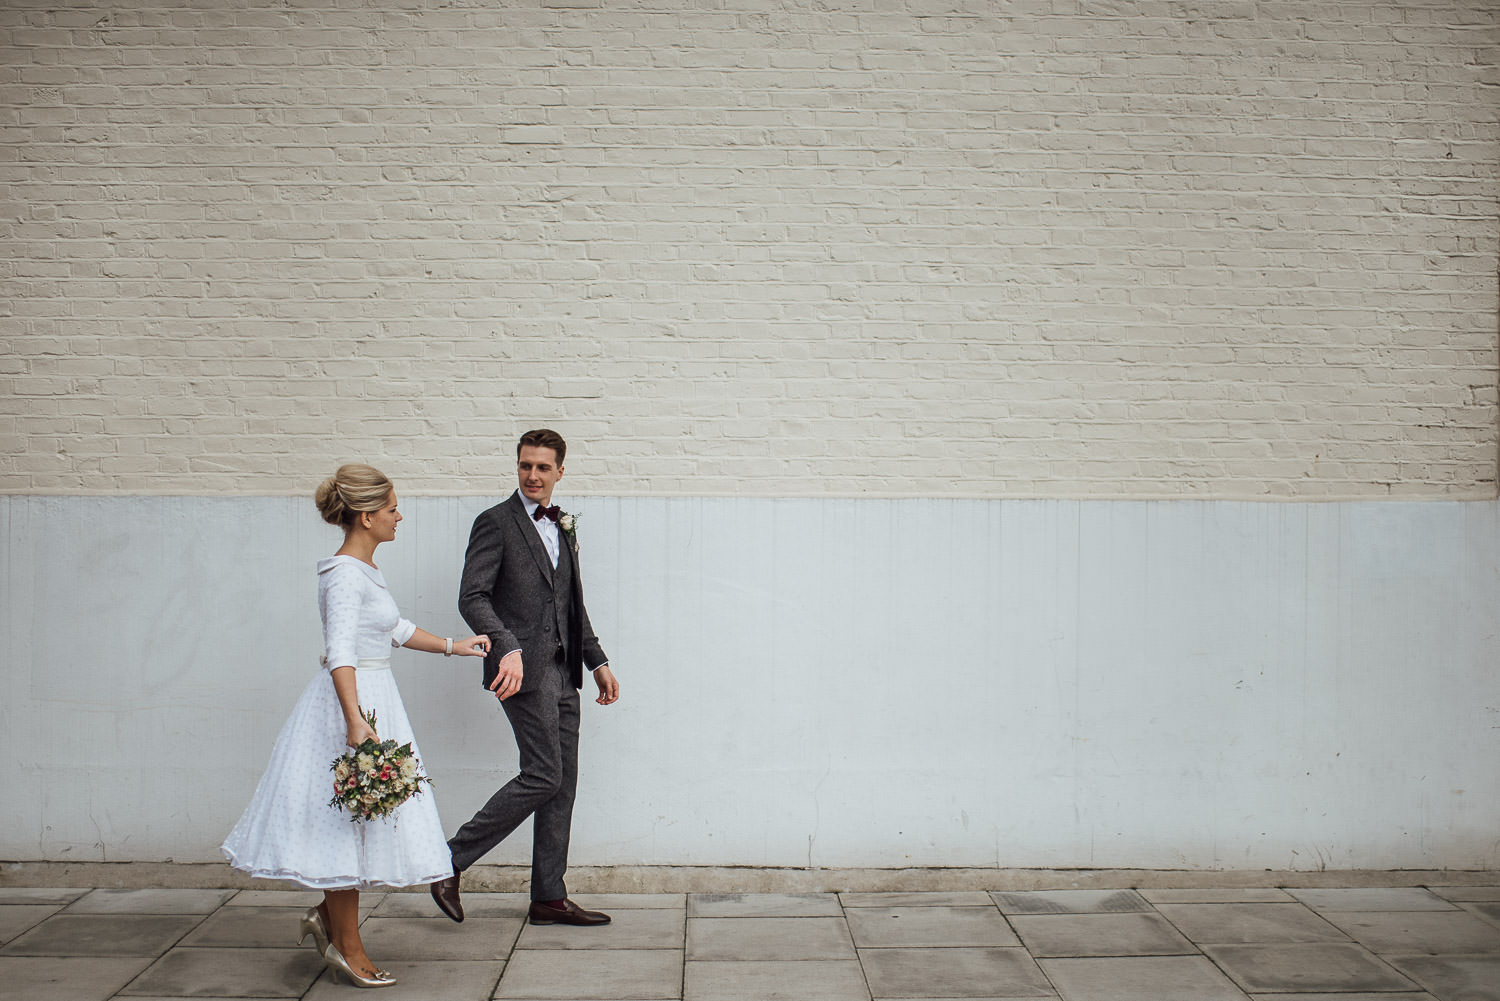 stoke newington wedding bride and groom walking by creative and alternative london wedding photographer the shannons photography